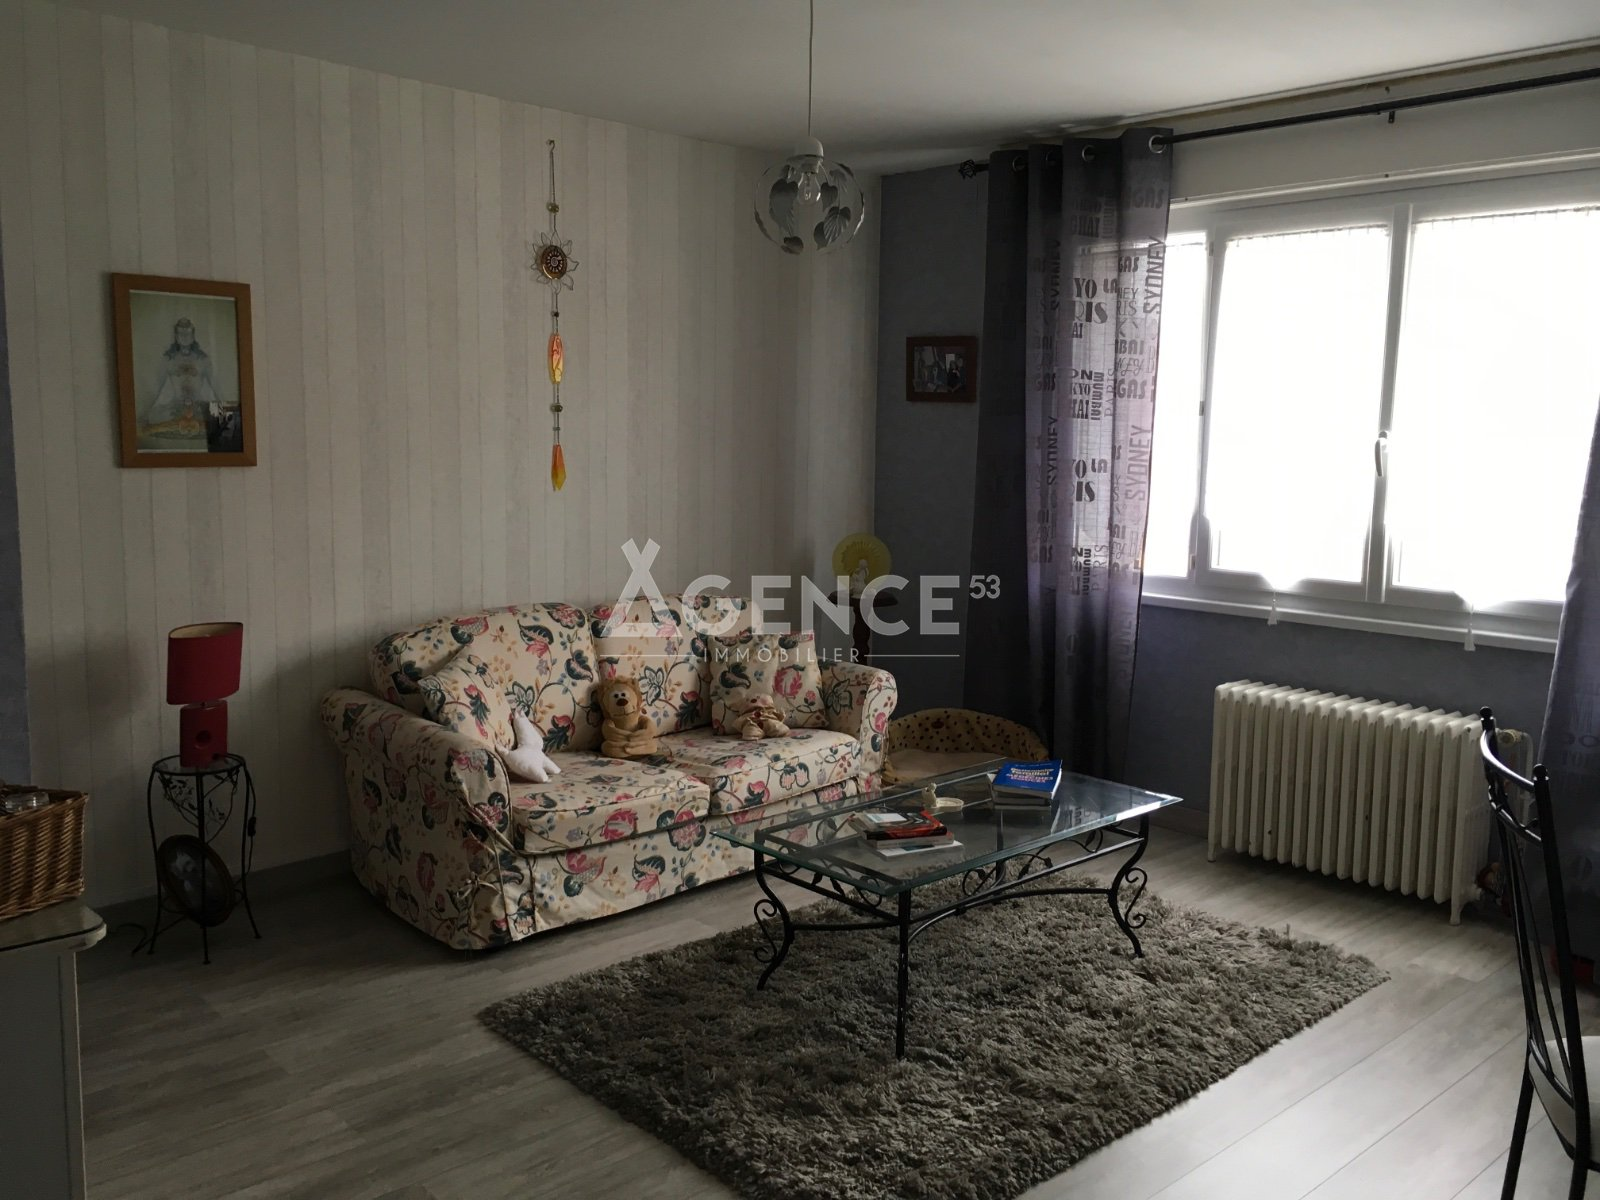 APPARTEMENT T4 A VENDRE - ST OMER - 123,7 m2 - 194 250 €